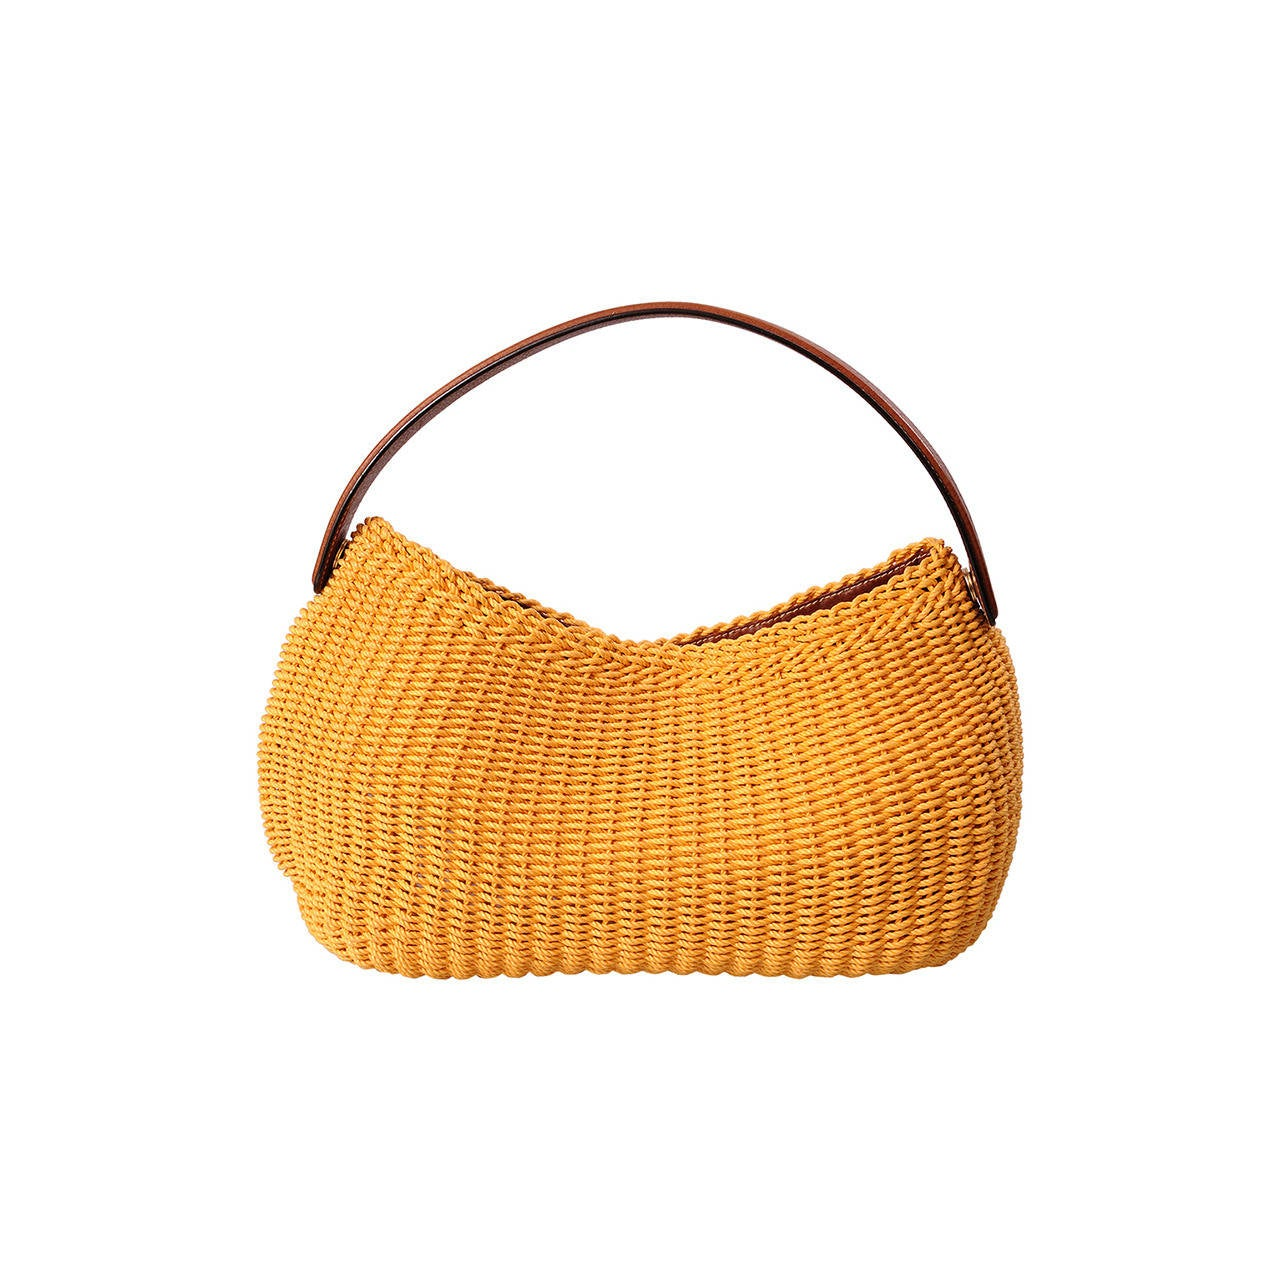 Oscar de la Renta Yellow Woven Cord Bag 1